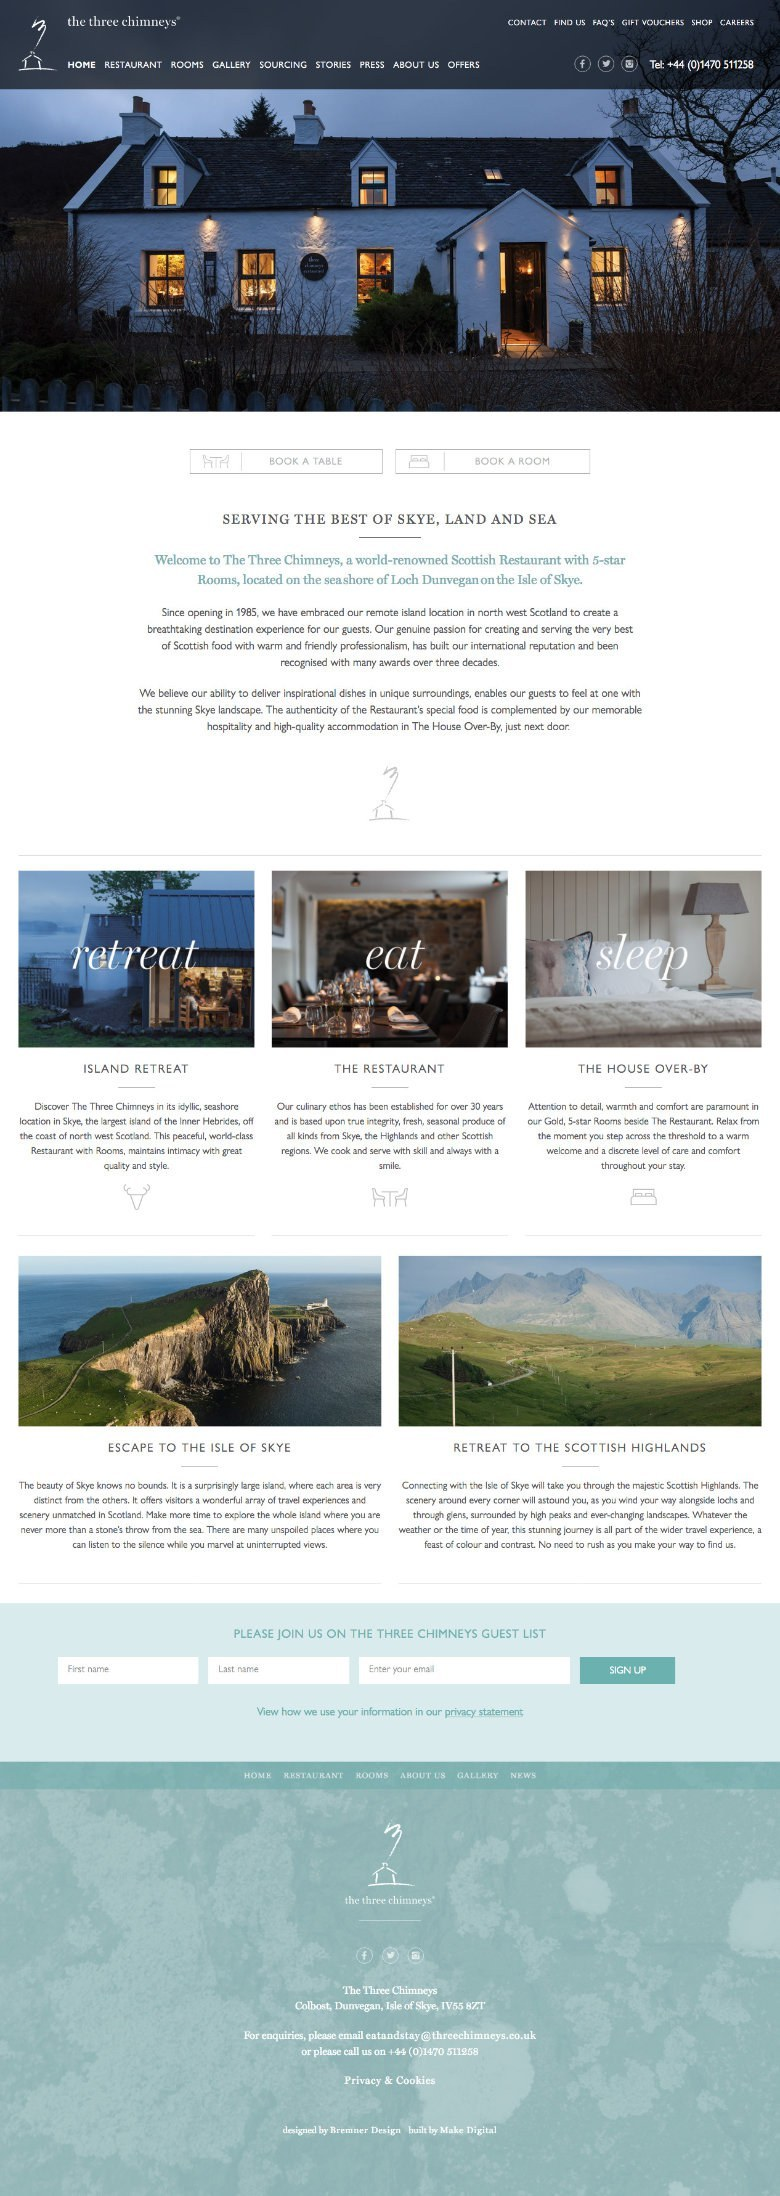 web design for The Three Chimneys